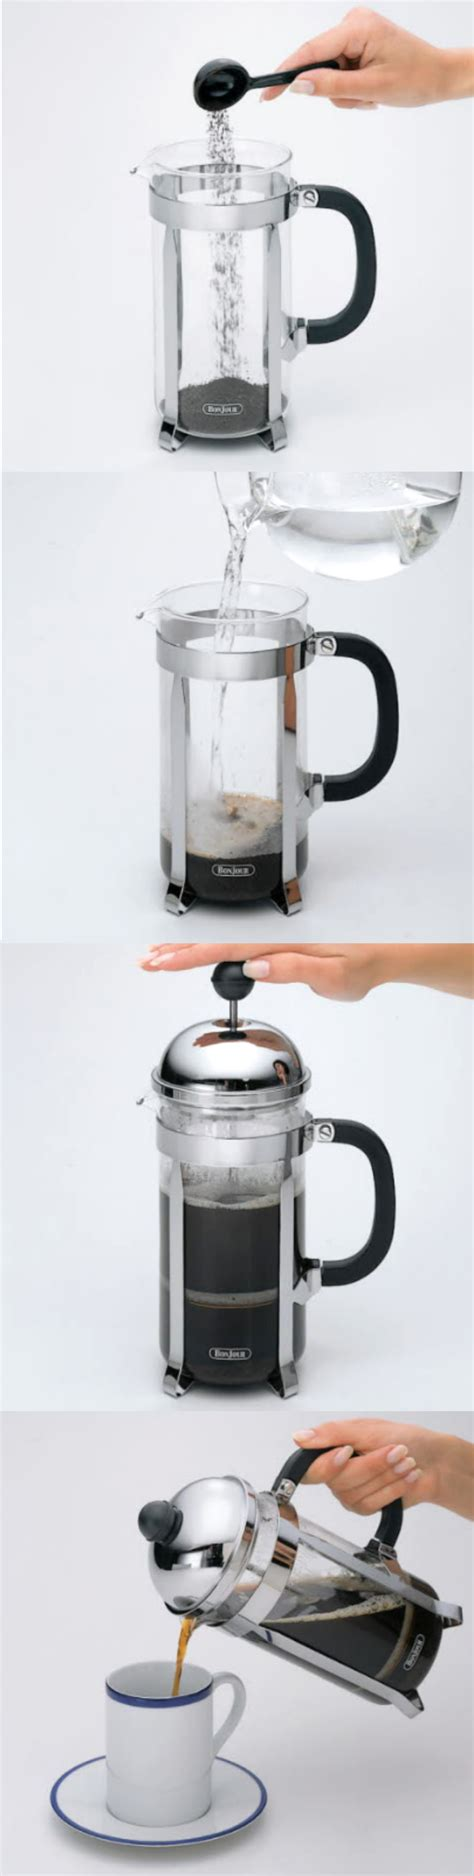 Just do the math, measure your coffee and for a homemade french press (assuming it has some sort of strainer), the process would be to use a coarsely ground coffee at a ratio of around 1. How to Use a French Press Coffee Brewer: 1. Add 8 ...